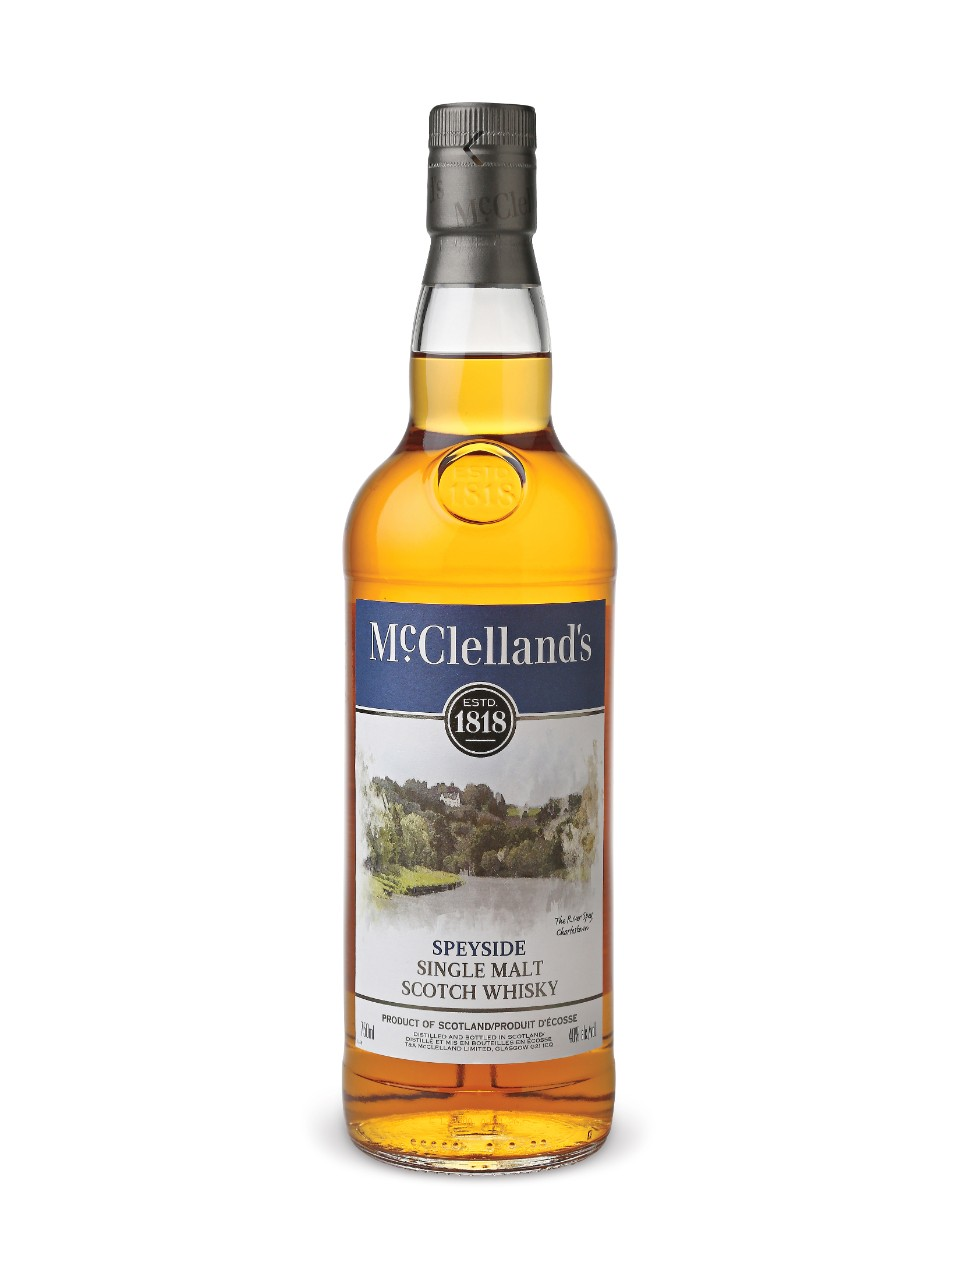 McClelland's Speyside Single Malt Scotch Whisky from LCBO